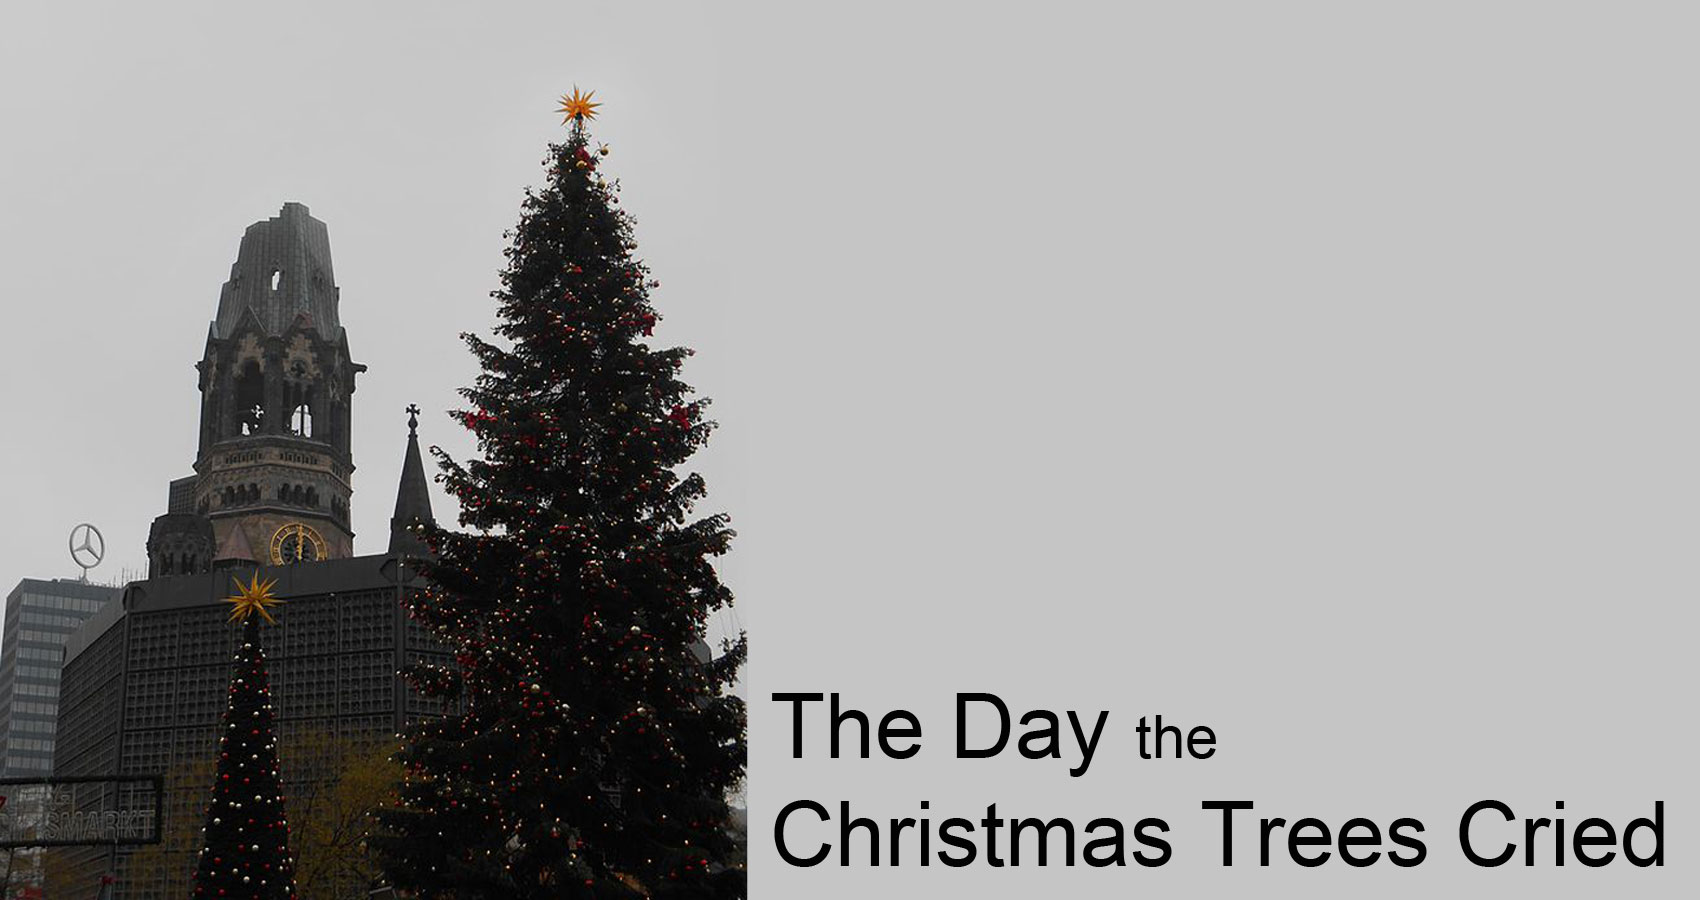 The Day the Christmas Trees Cried by Nobby66 at Spillwords.com